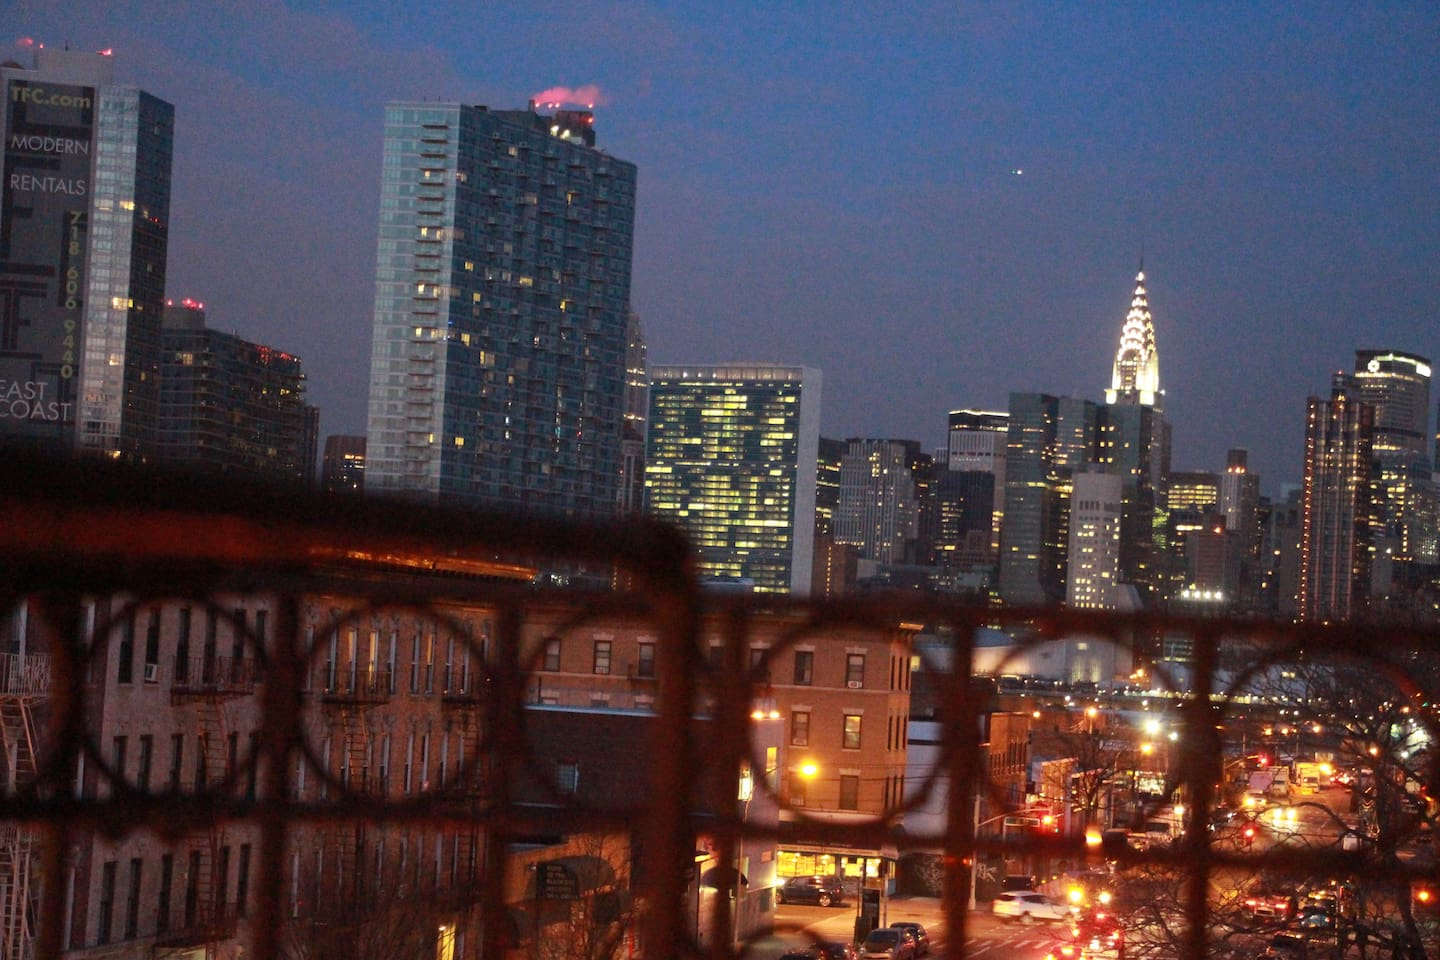 The best view of Manhattan is from Queens :)